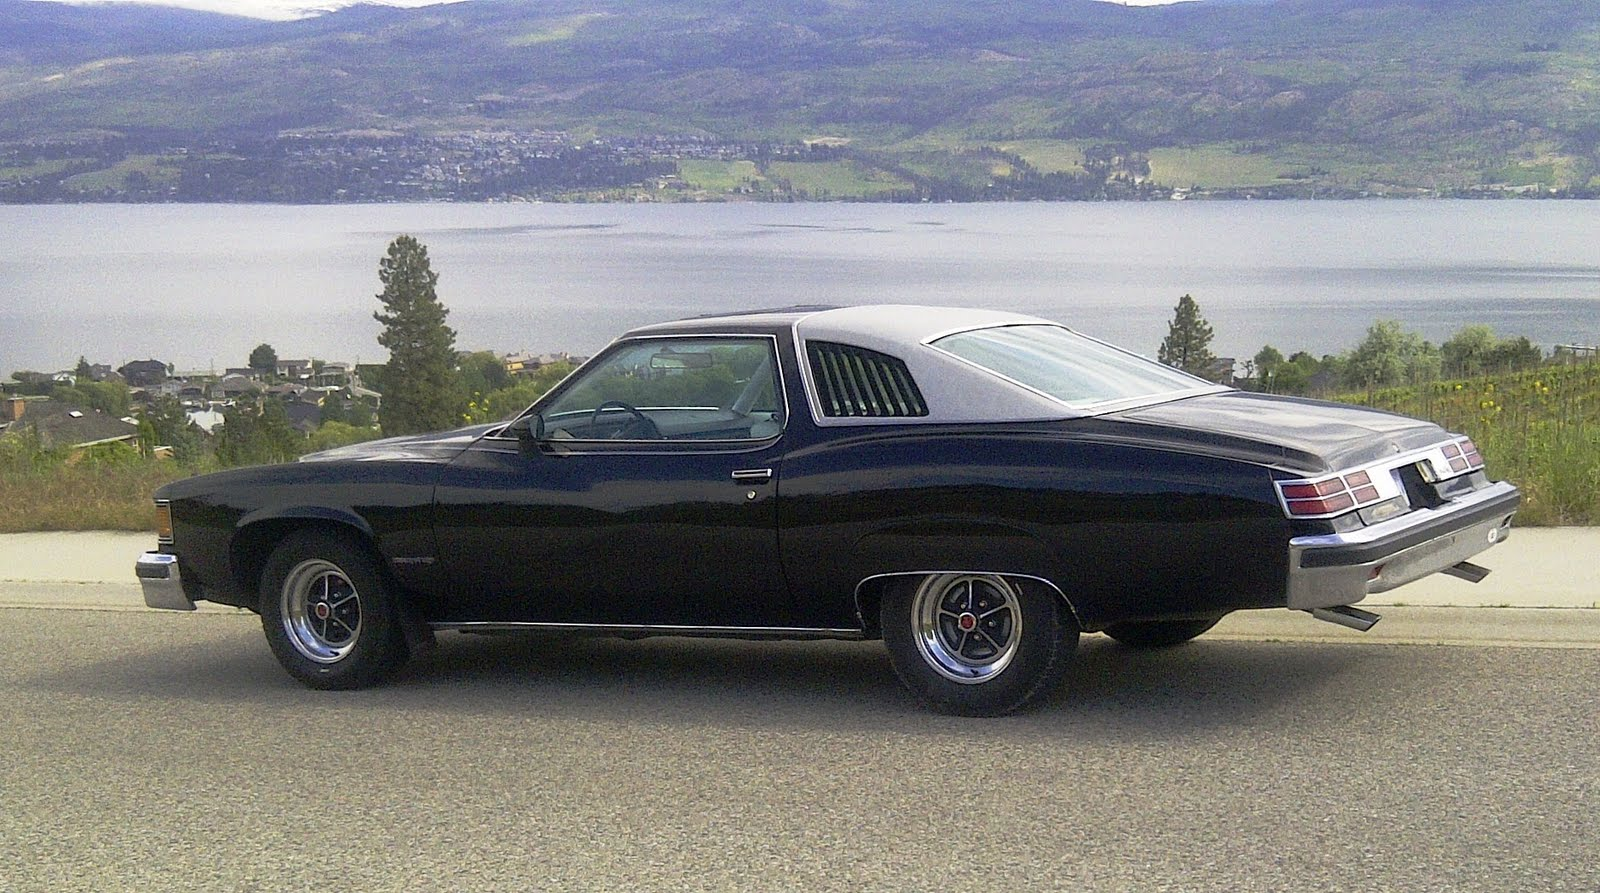 Pontiac Lemans Sport Coupe: Fender skirts added to 1976 ...